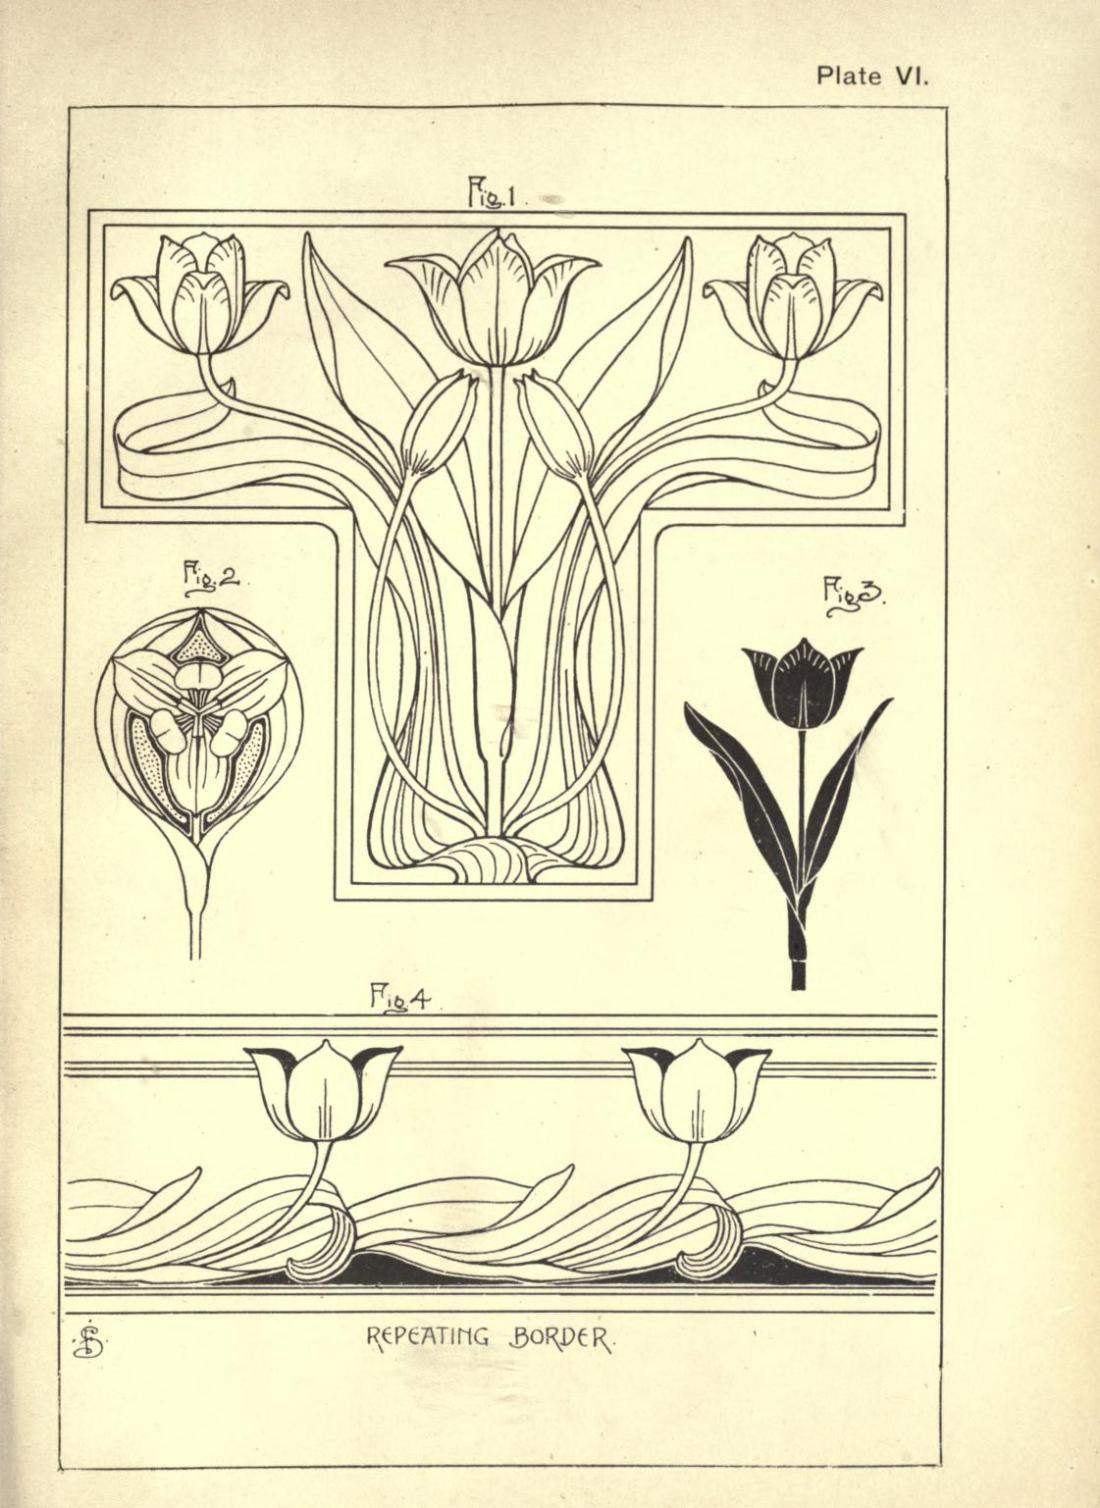 """Tulip."" Page 23. Plate VI. Figures 1-4 with a repeating border."